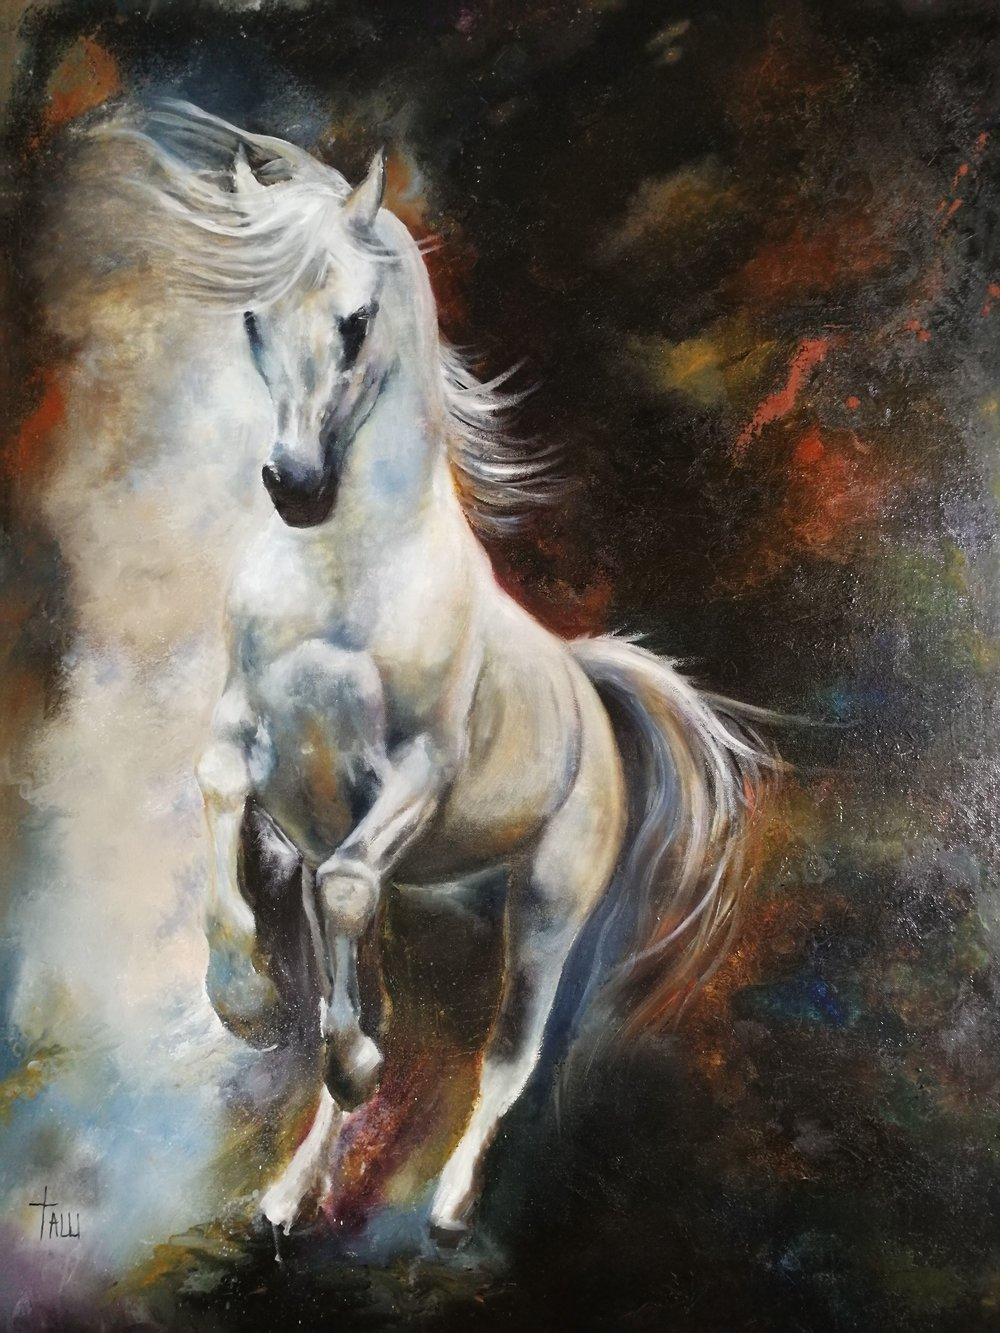 The White horse from Revelation 6:2